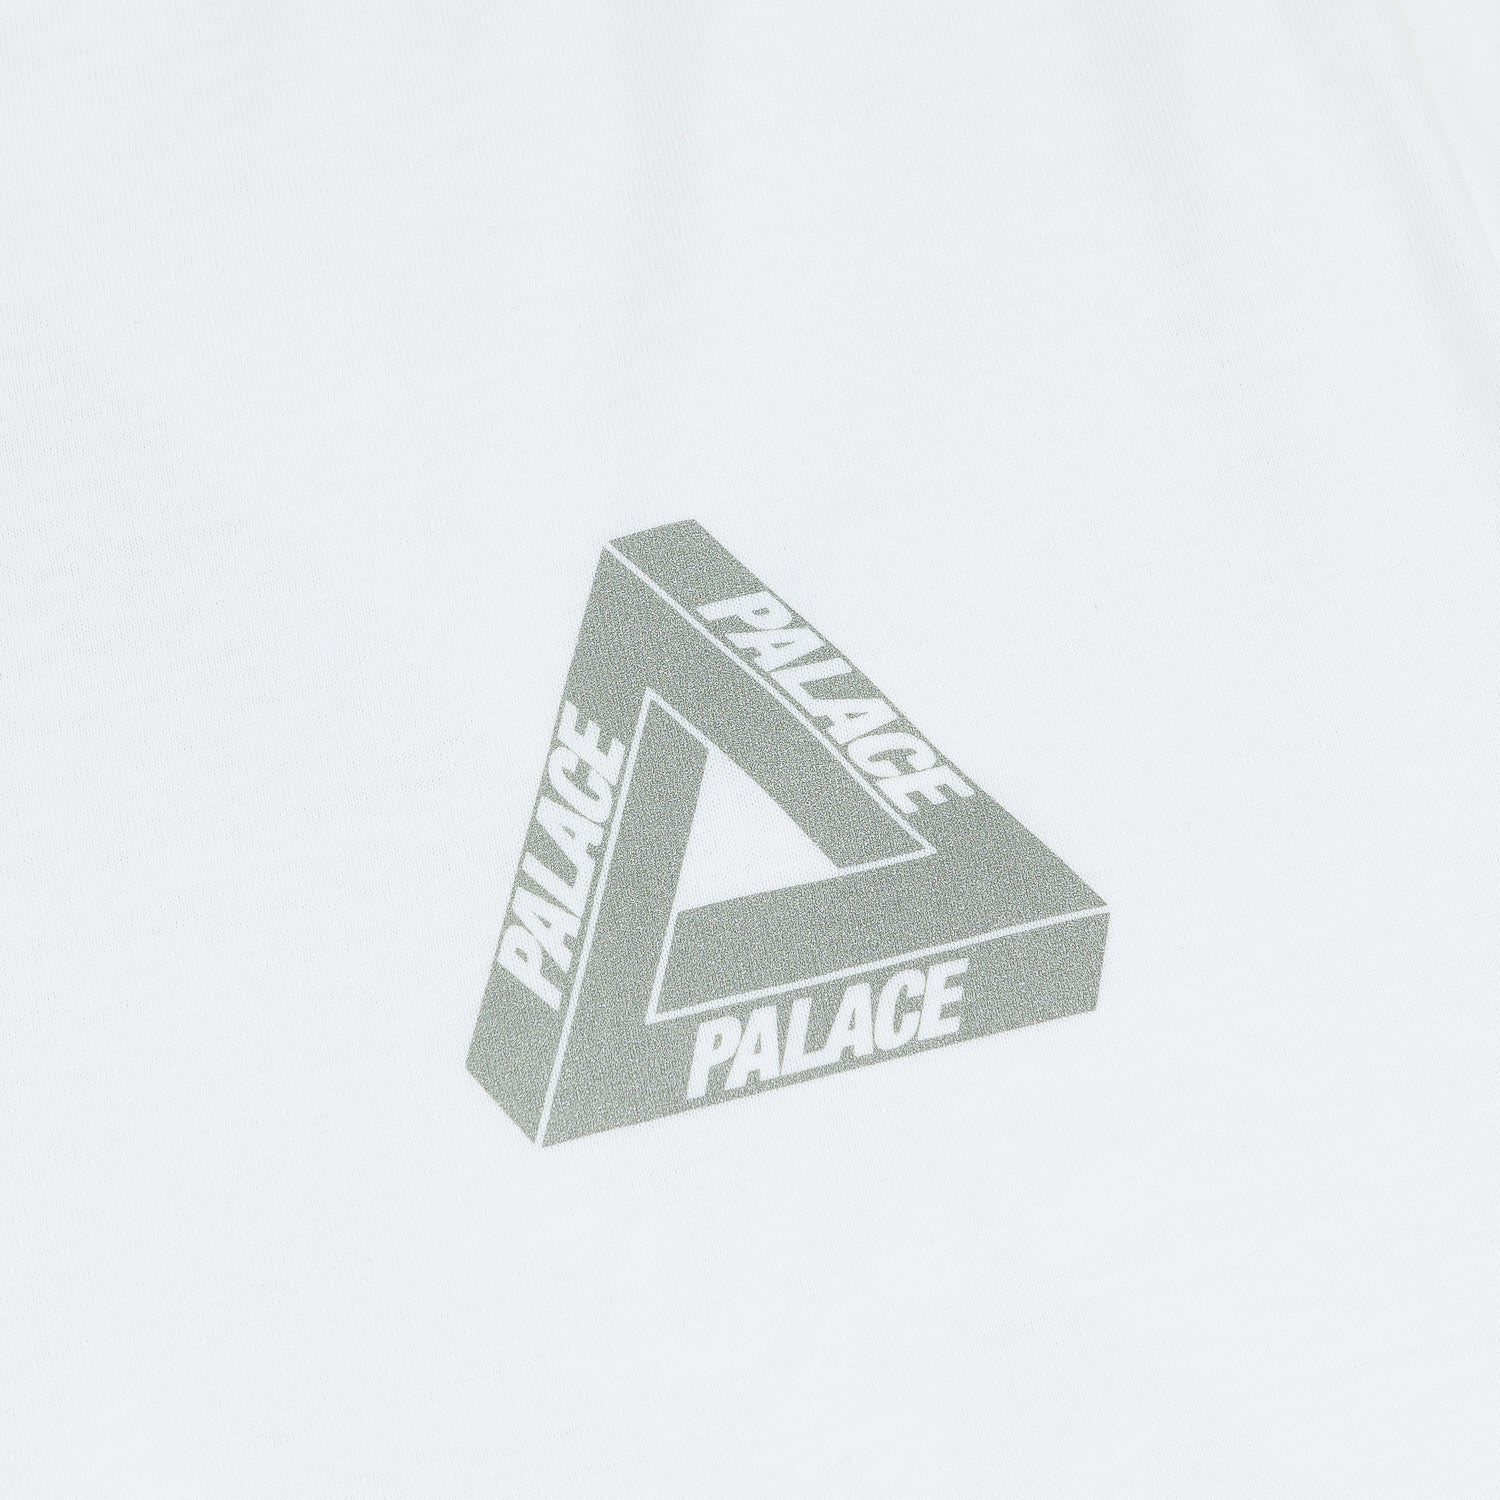 Palace 3M T-Shirt - White